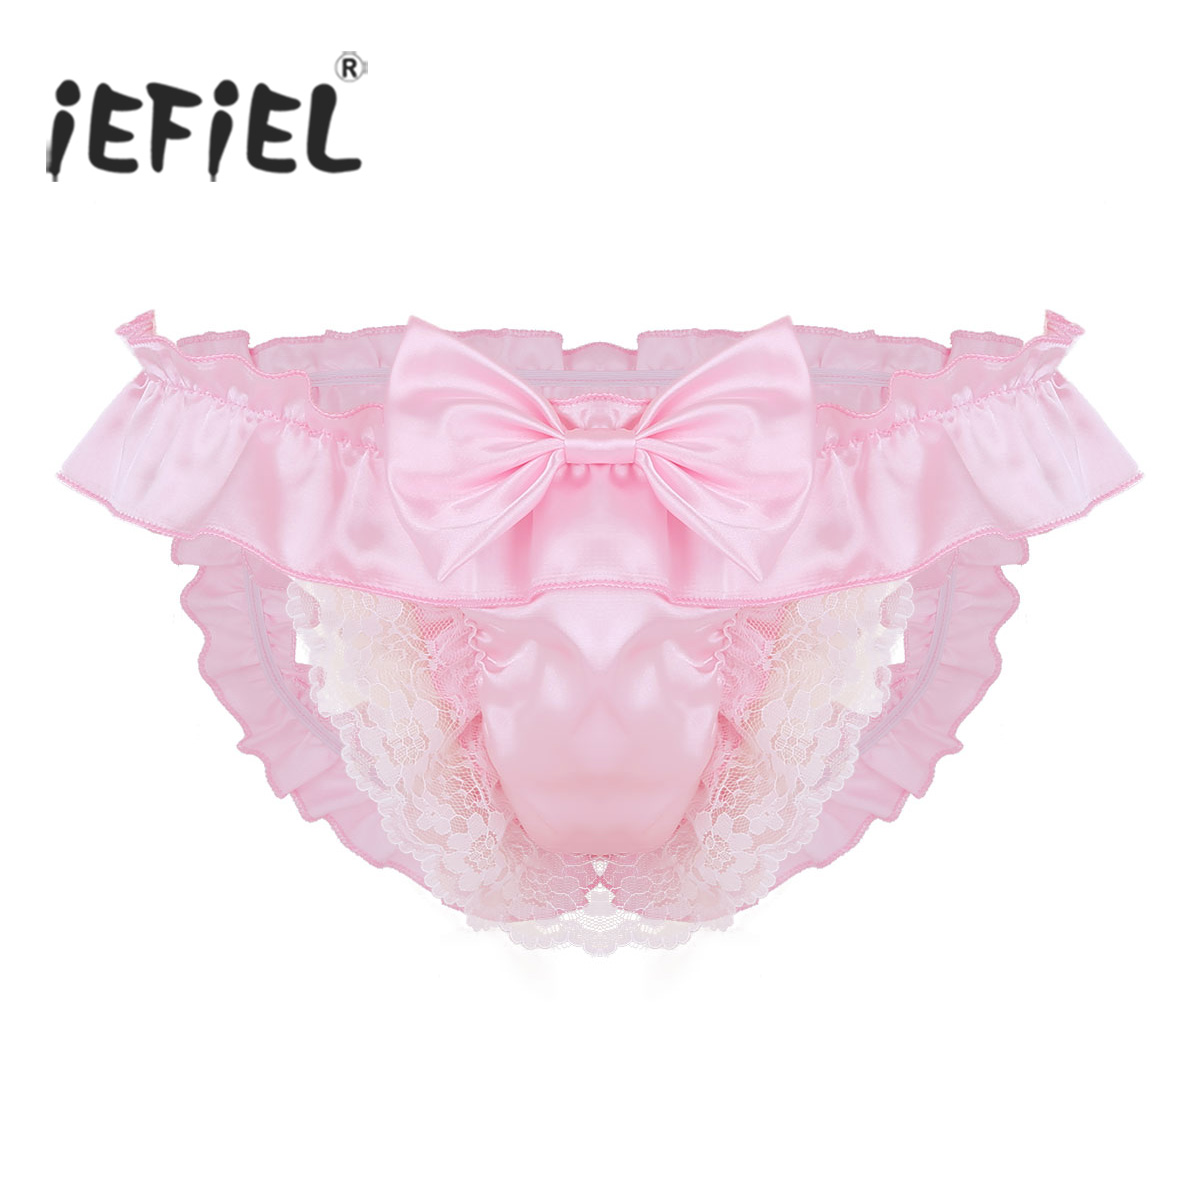 Sissy Sheer Soft Nylon Frilly Lace Panties Knickers Briefs CD TV Size 10-20